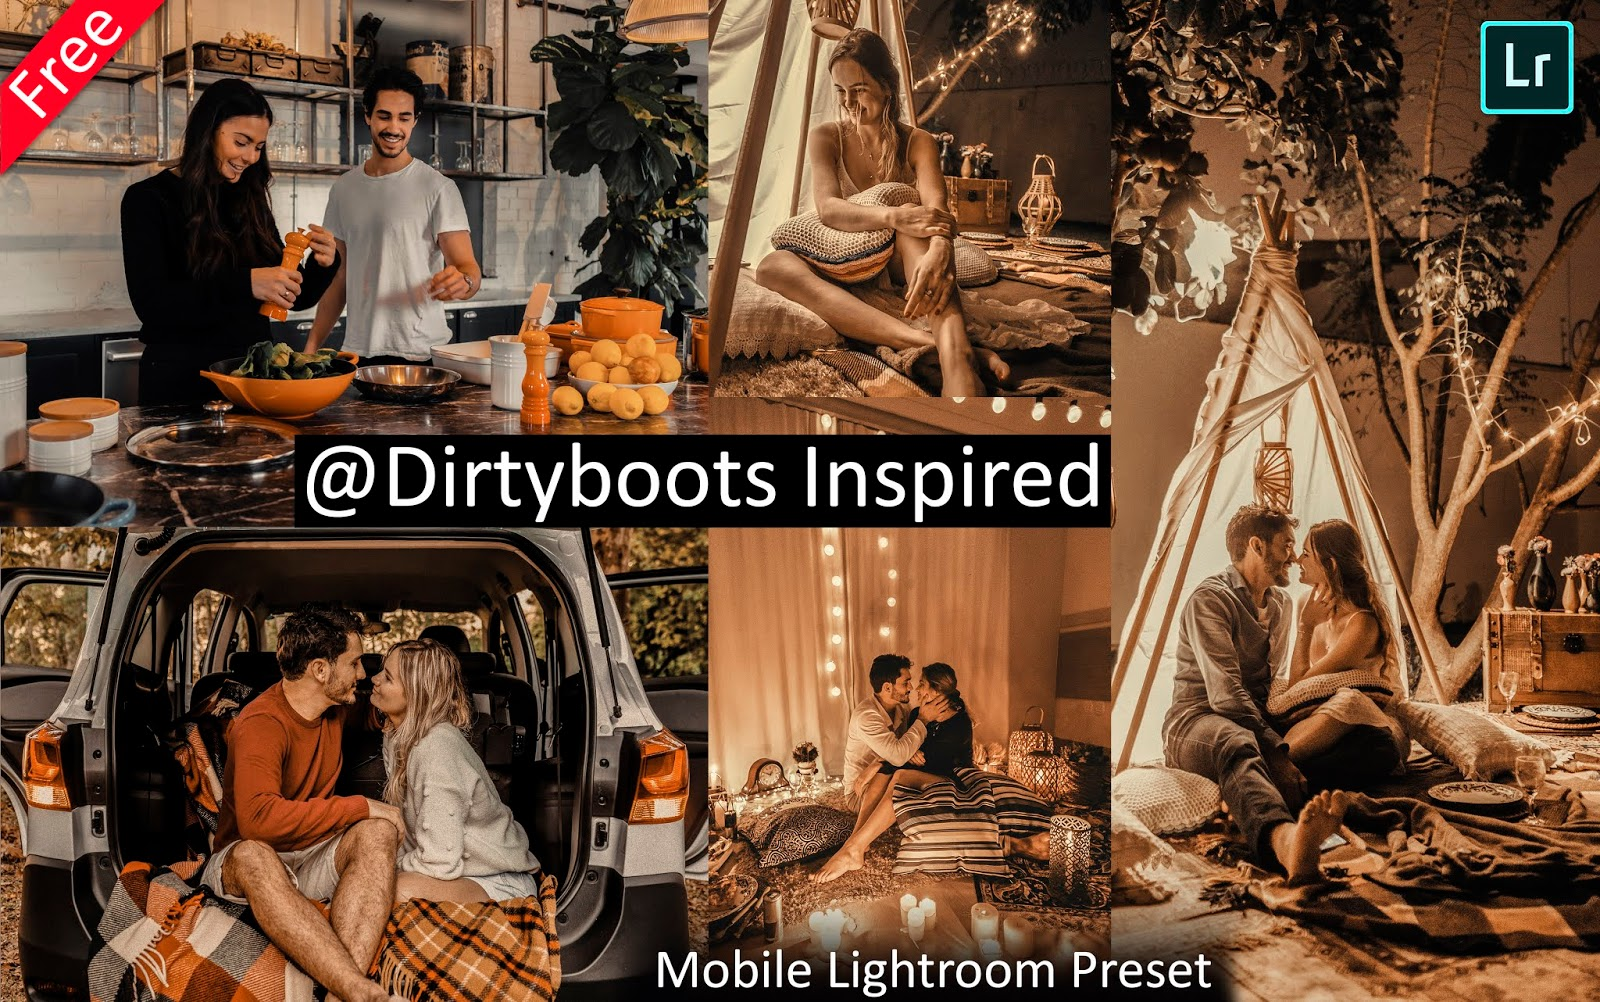 Dirtyboots Inspired Mobile Lightroom Presets for Free | How to Edit Photos Like @dirtyboots in Mobile Lightroom